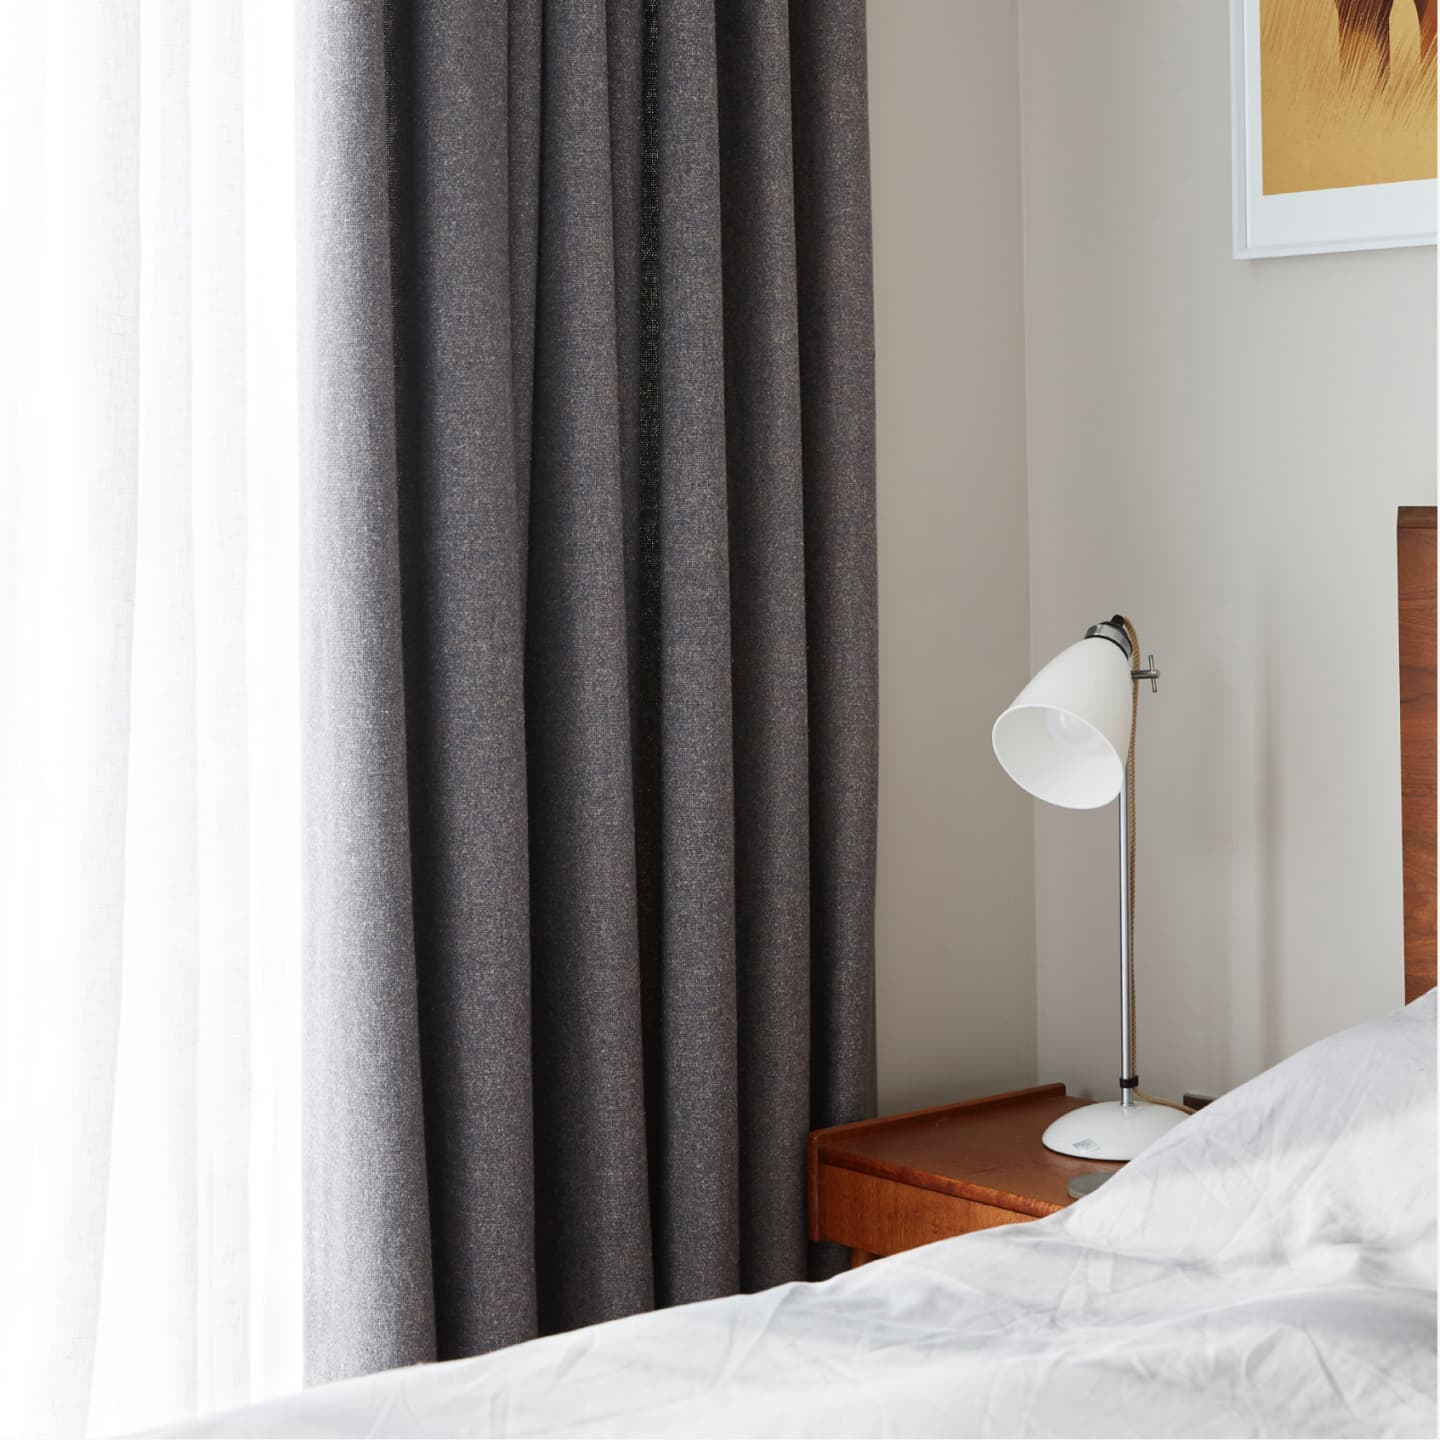 bedside table + light with grey curtains